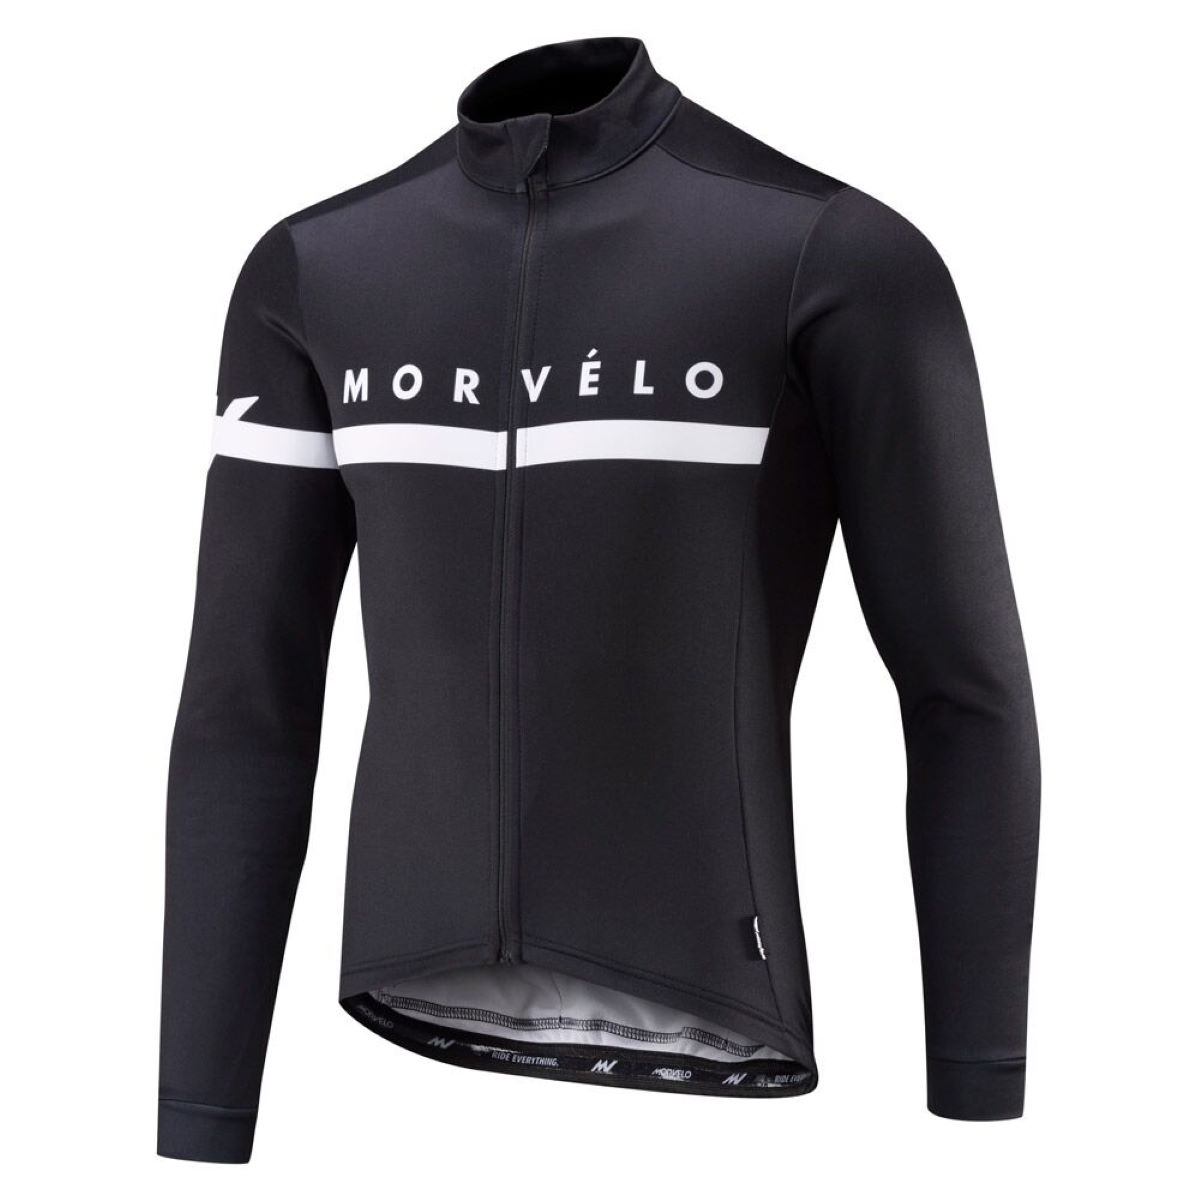 Maillot Morvelo Kuler Thermoactive (manches longues) - M Noir